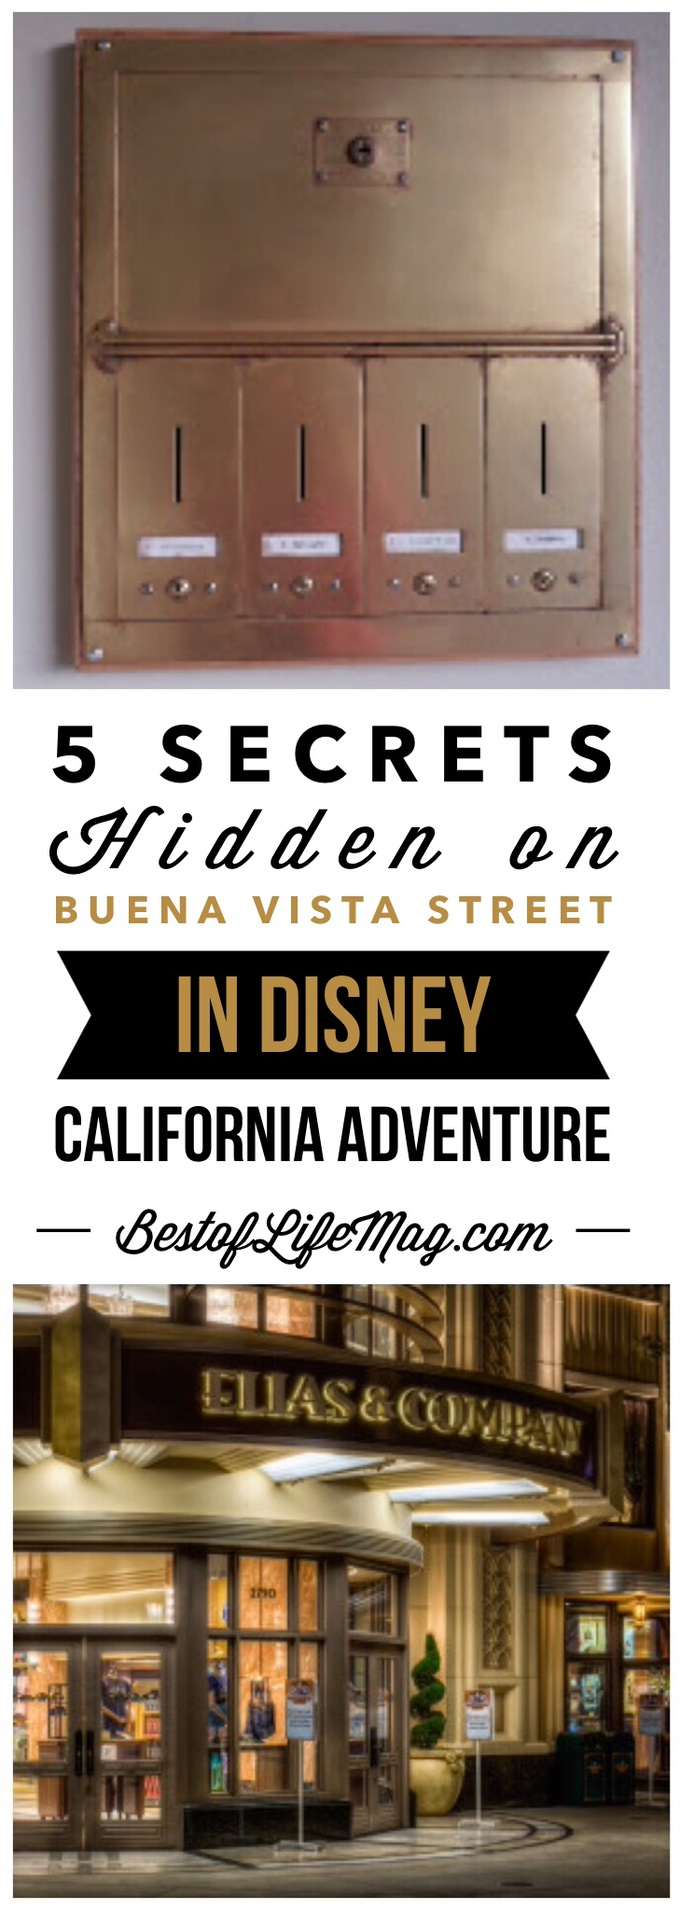 Let's take a detailed look at the new Buena Vista Street in Disney California Adventure and see just how much of Walt's past has been hidden in plain sight. via @amybarseghian